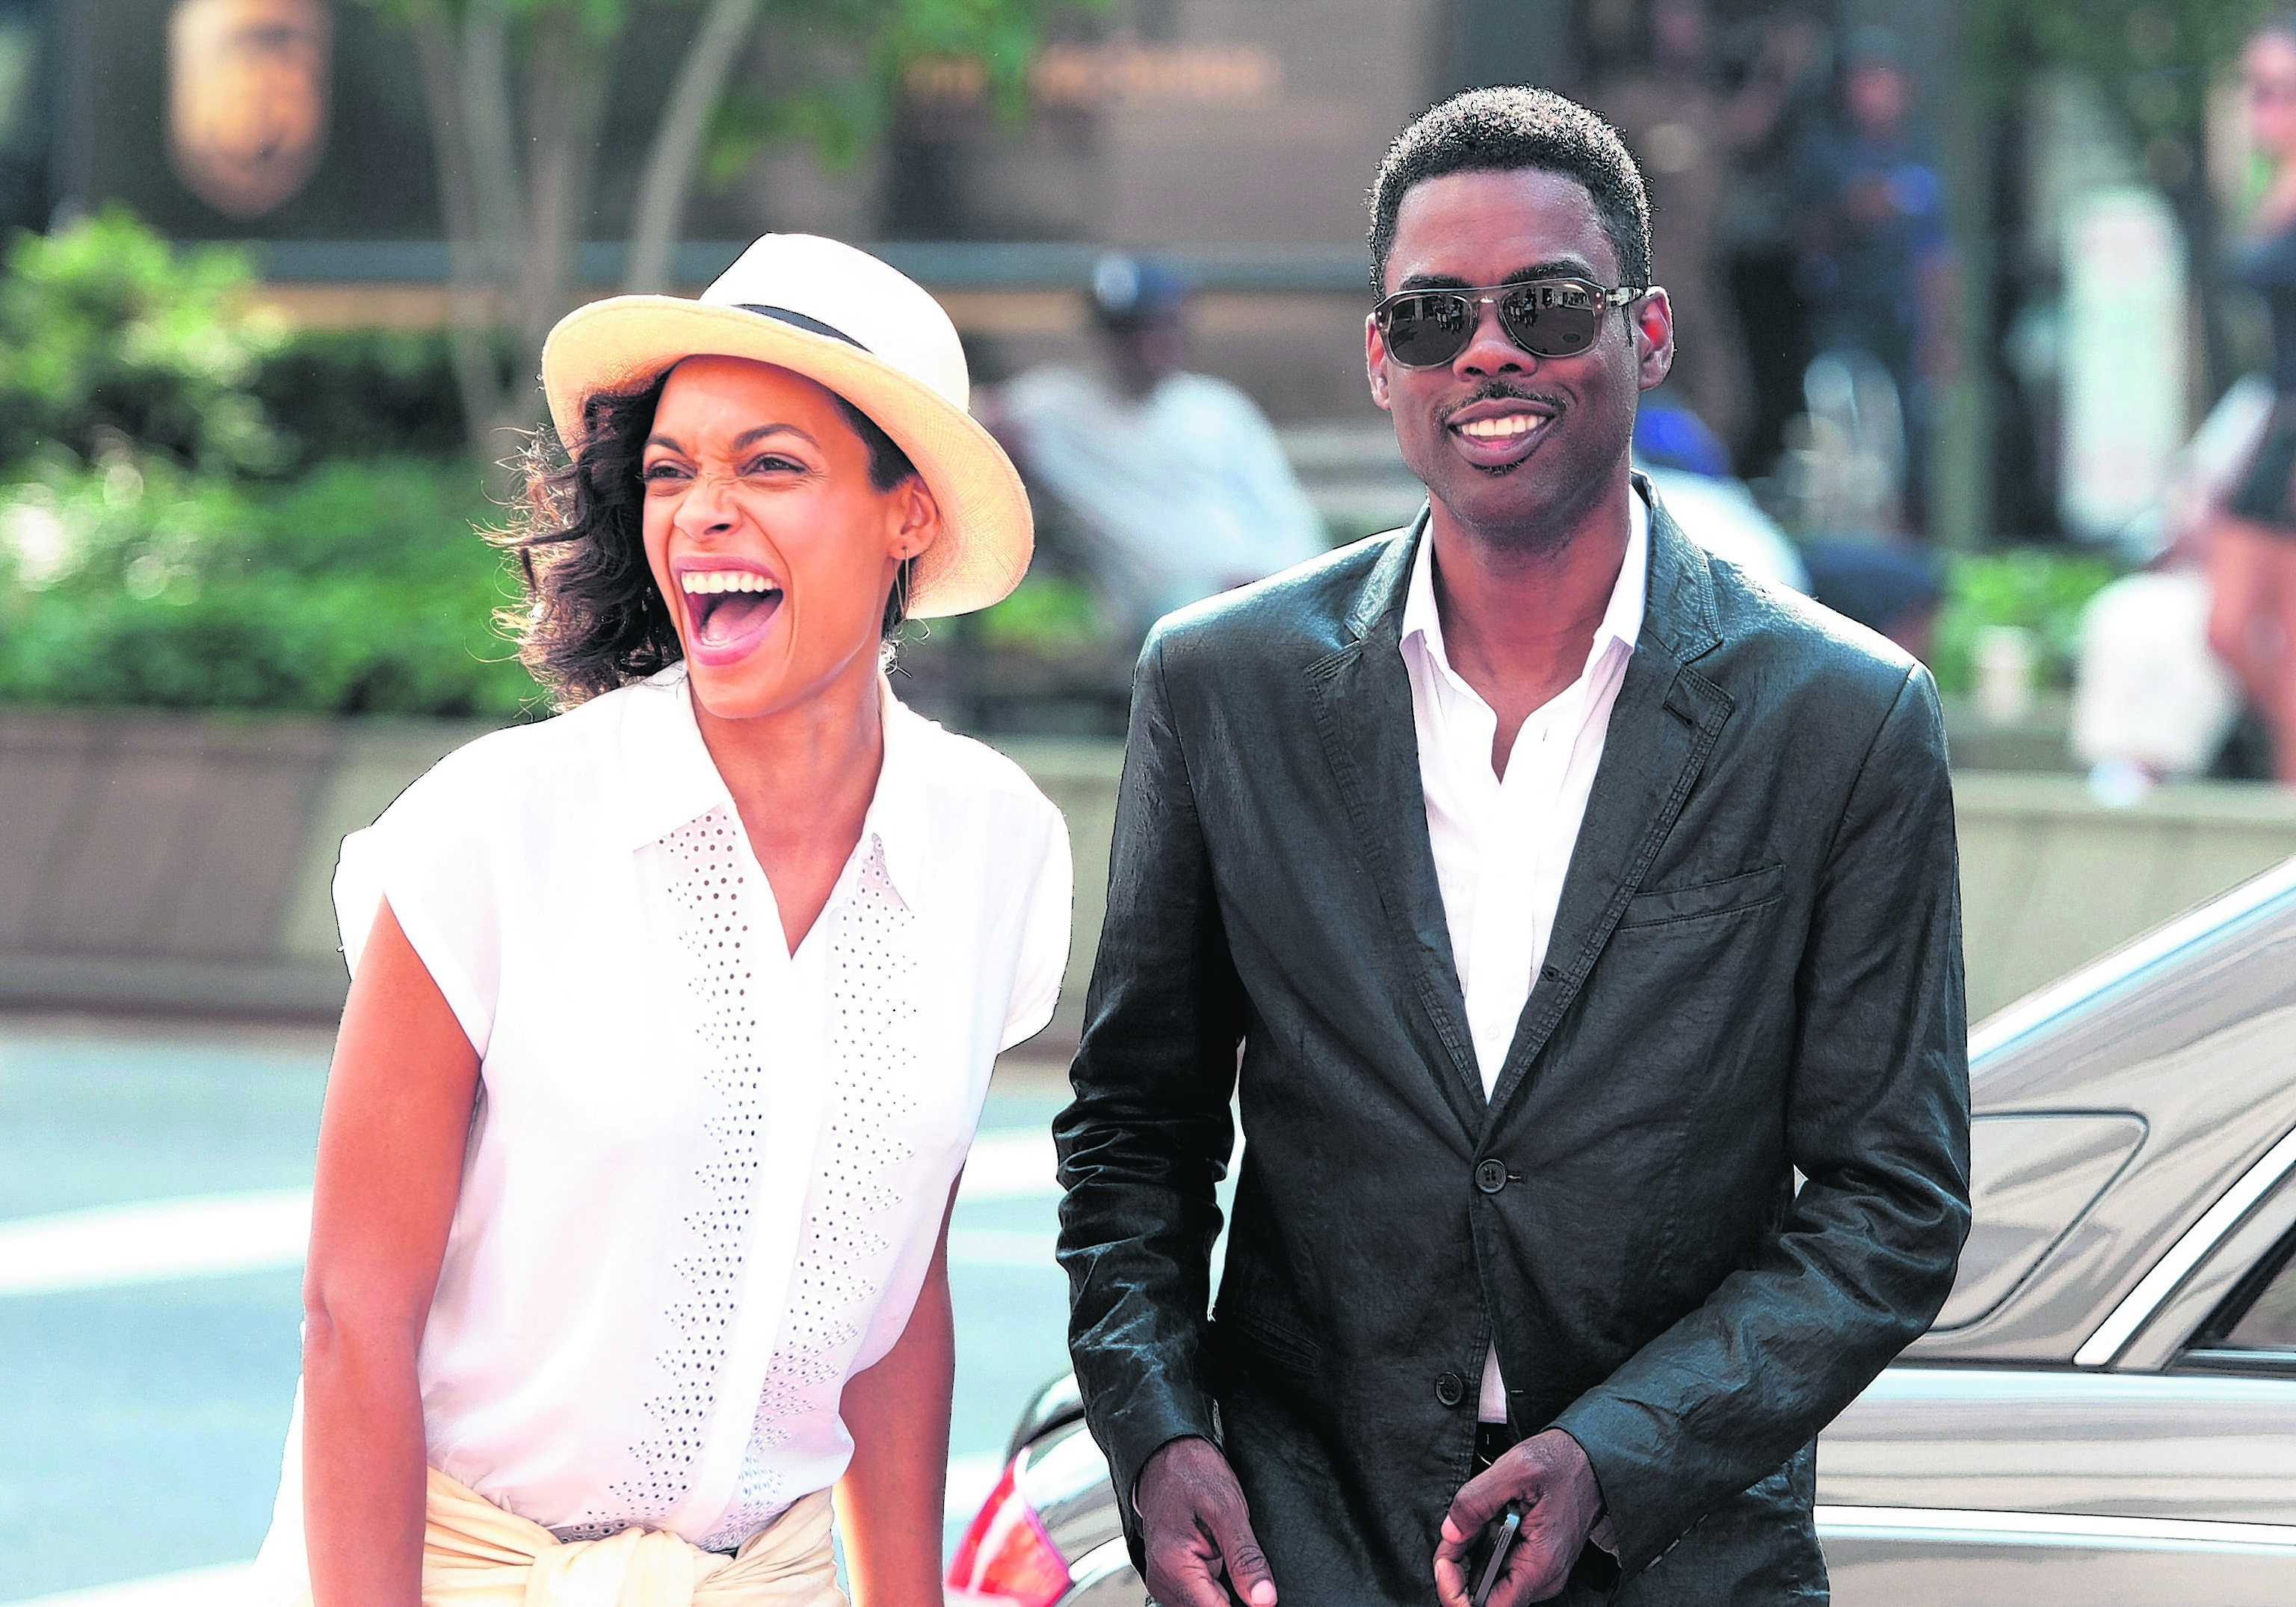 Chris Rock and Rosario Dawson star in Top Five